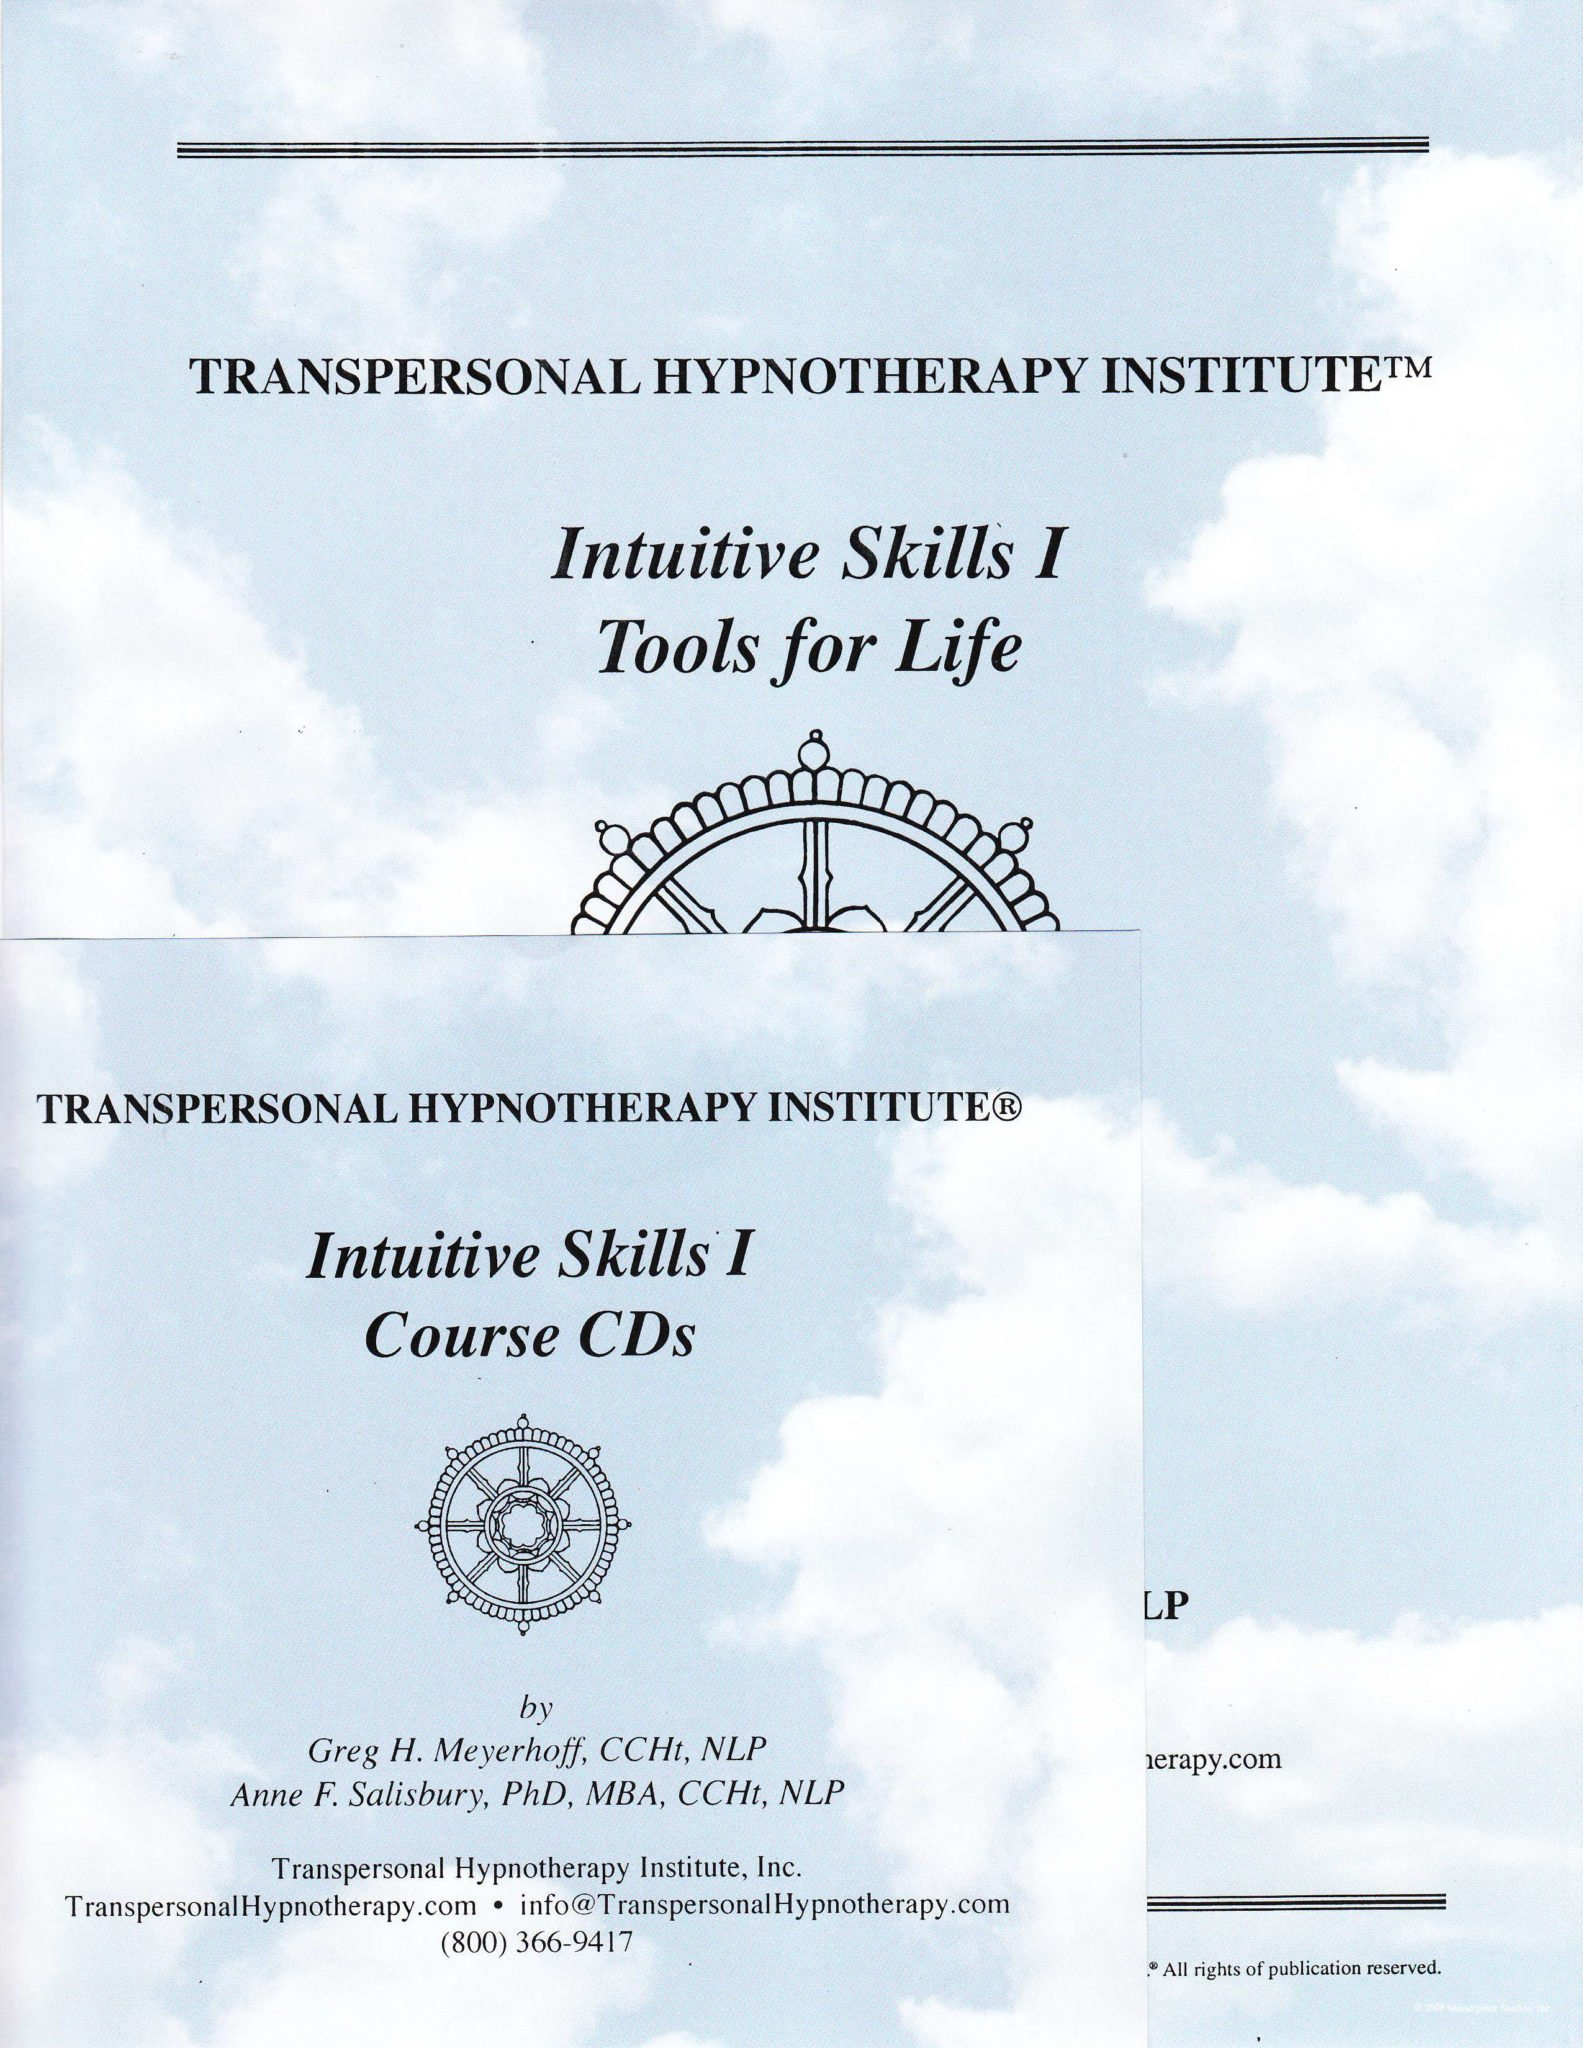 Intuitive Skills 1, Tools for Life Course